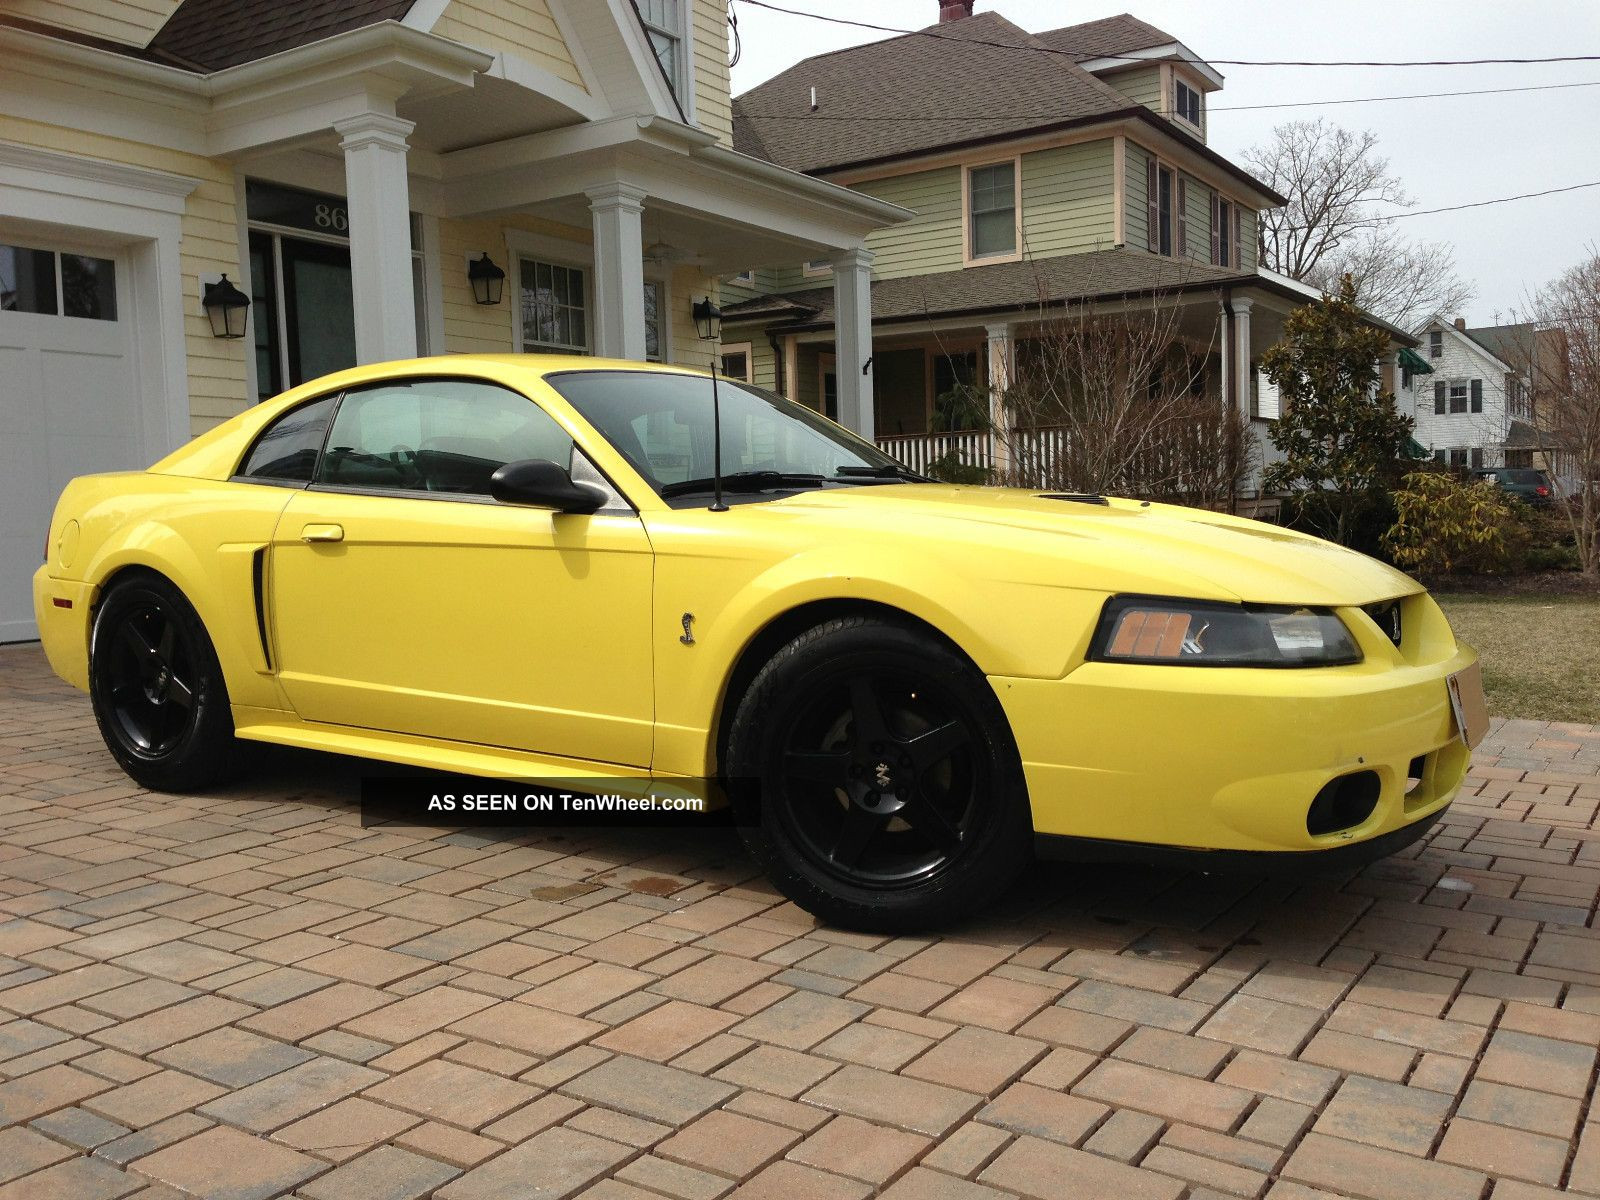 2001 ford mustang gt 4 6 v8 5 speed manual black. Black Bedroom Furniture Sets. Home Design Ideas